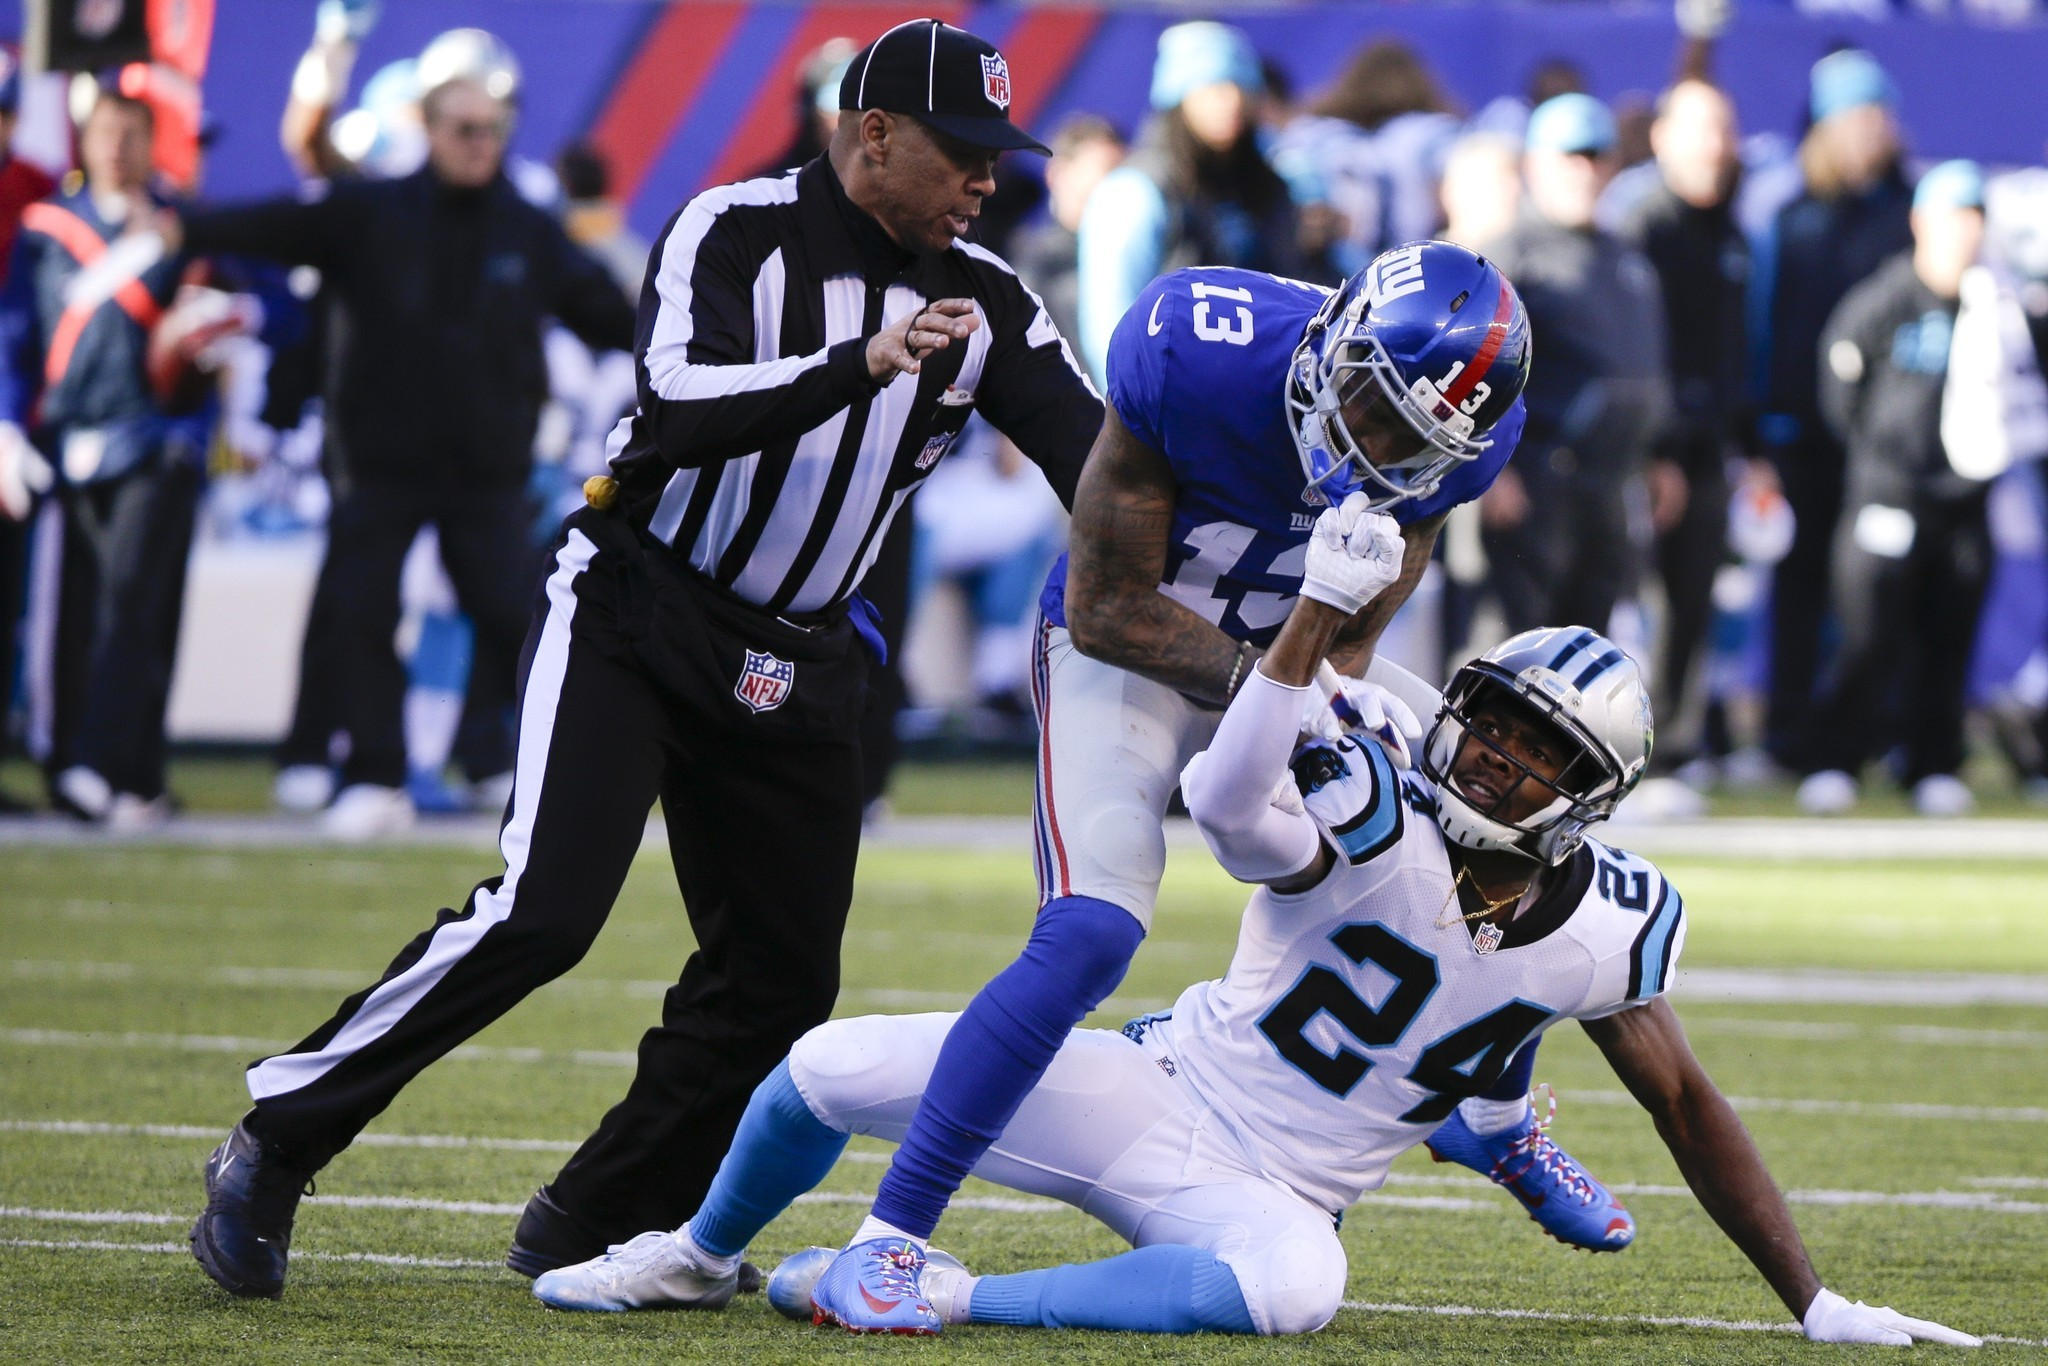 Odell Beckham Jr. Loses His Grip, Costing Giants - Hartford Courant